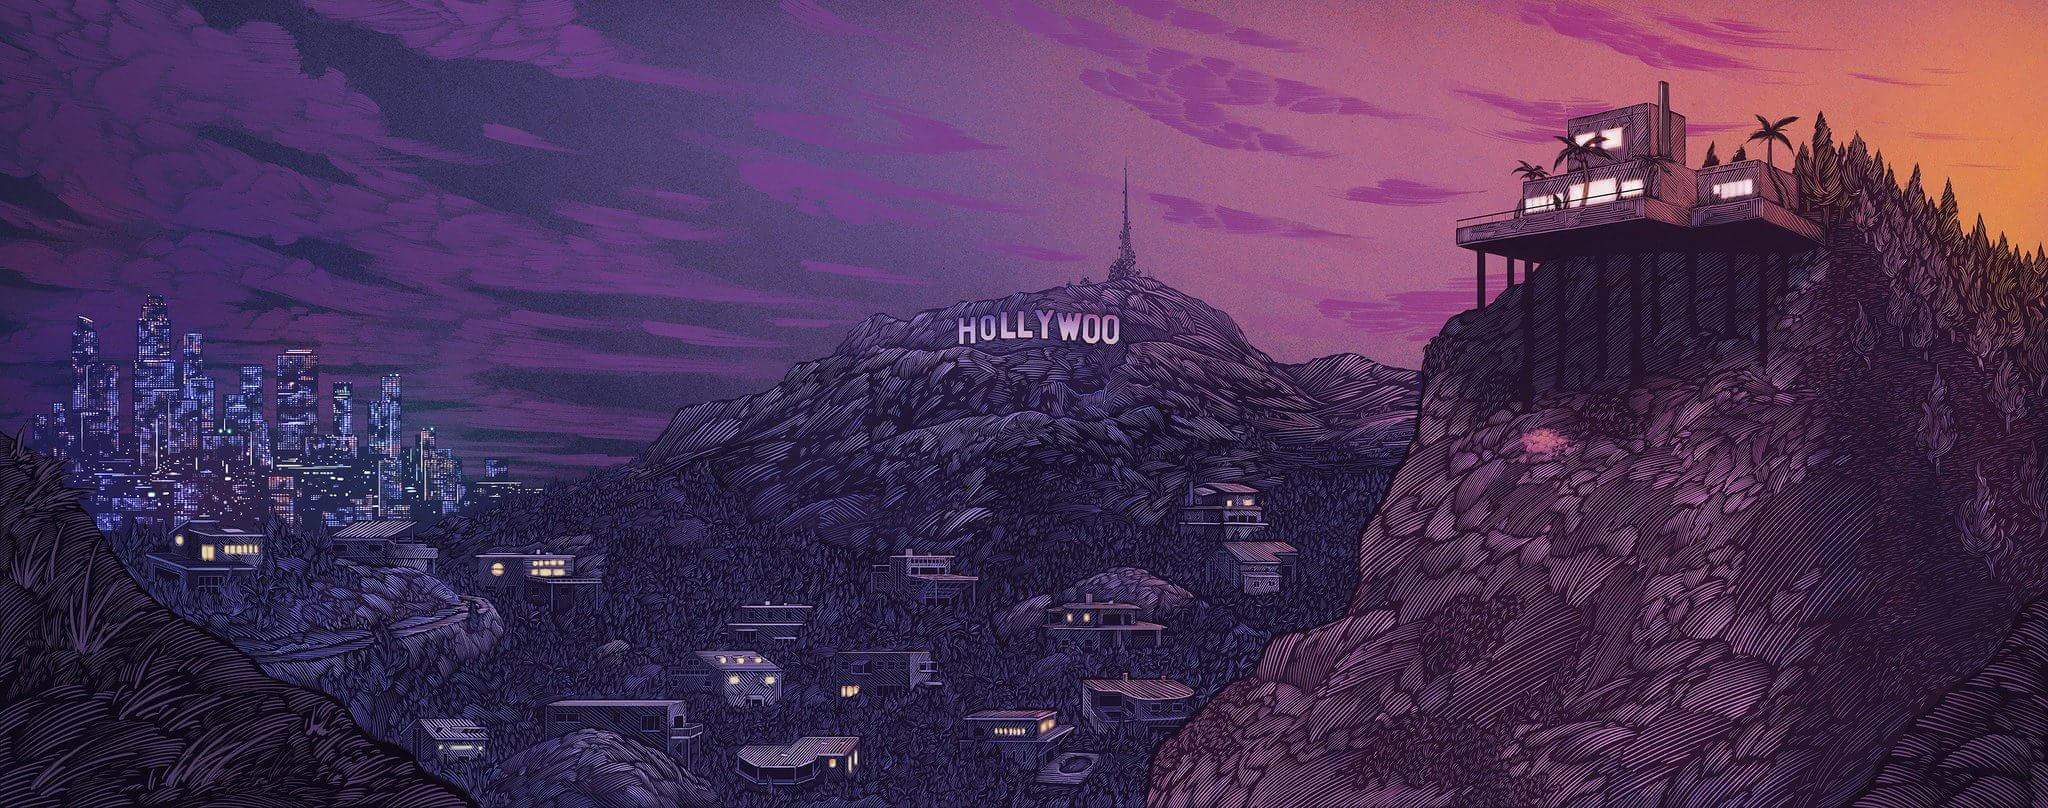 Beautiful Hollywoo Painting Wallpaper retweeted by Bojack Cool 2048x808